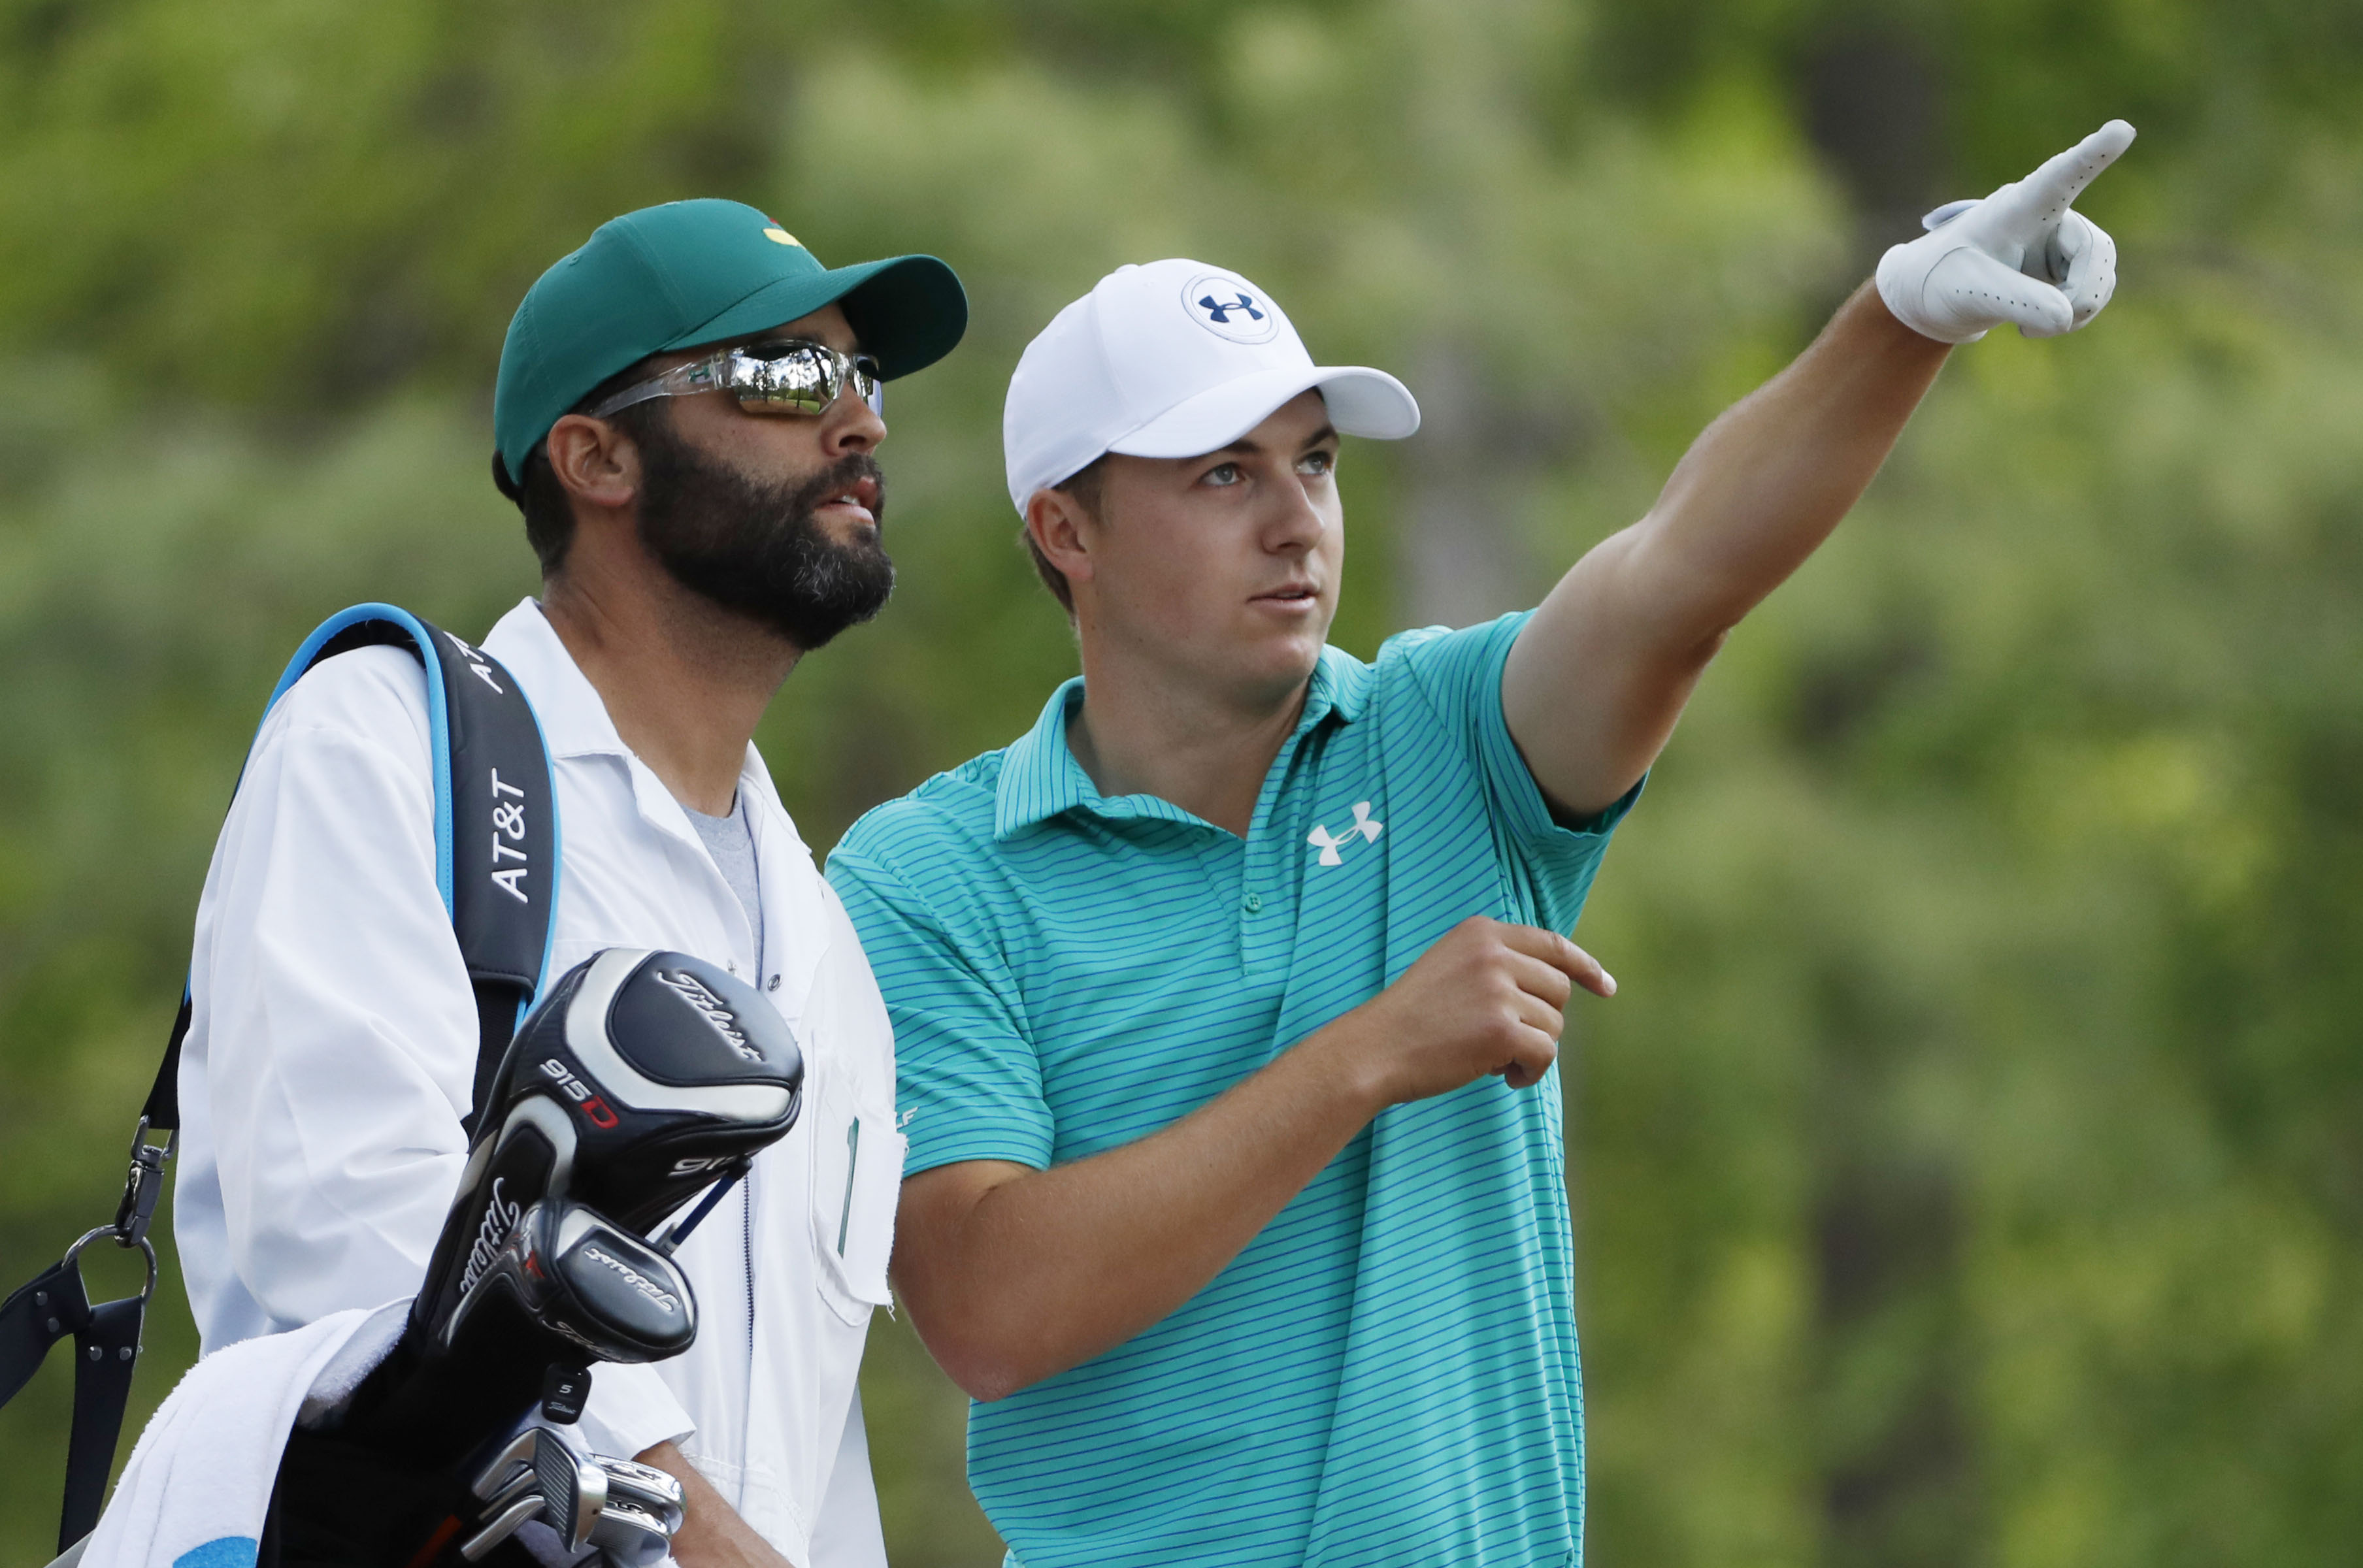 Jordan Spieth (right) gestures as he talks with caddie Michael Greller on the 11th hole during the first round of the 2016 The Masters golf tournament at Augusta National Golf Club.